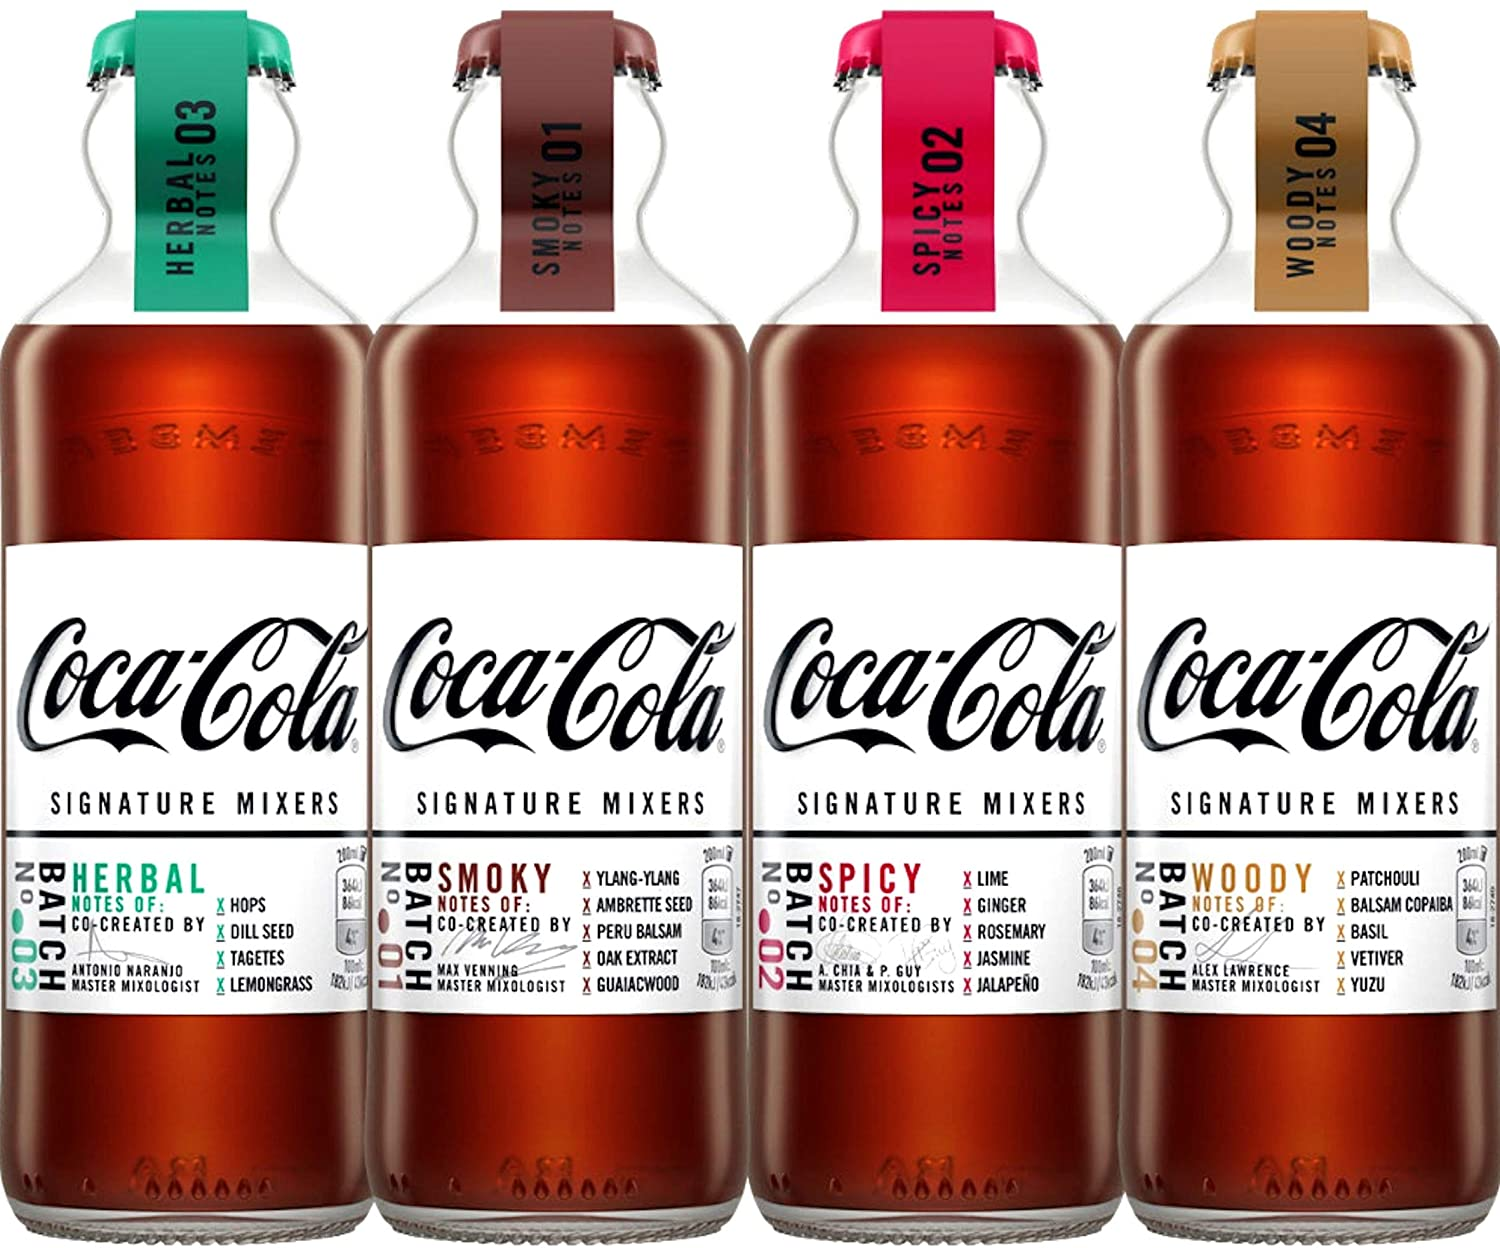 4 x NEW COCA-COLA Signature Mixers Set - Smoky, Spicy, Herbal & Woody - Limited Edition